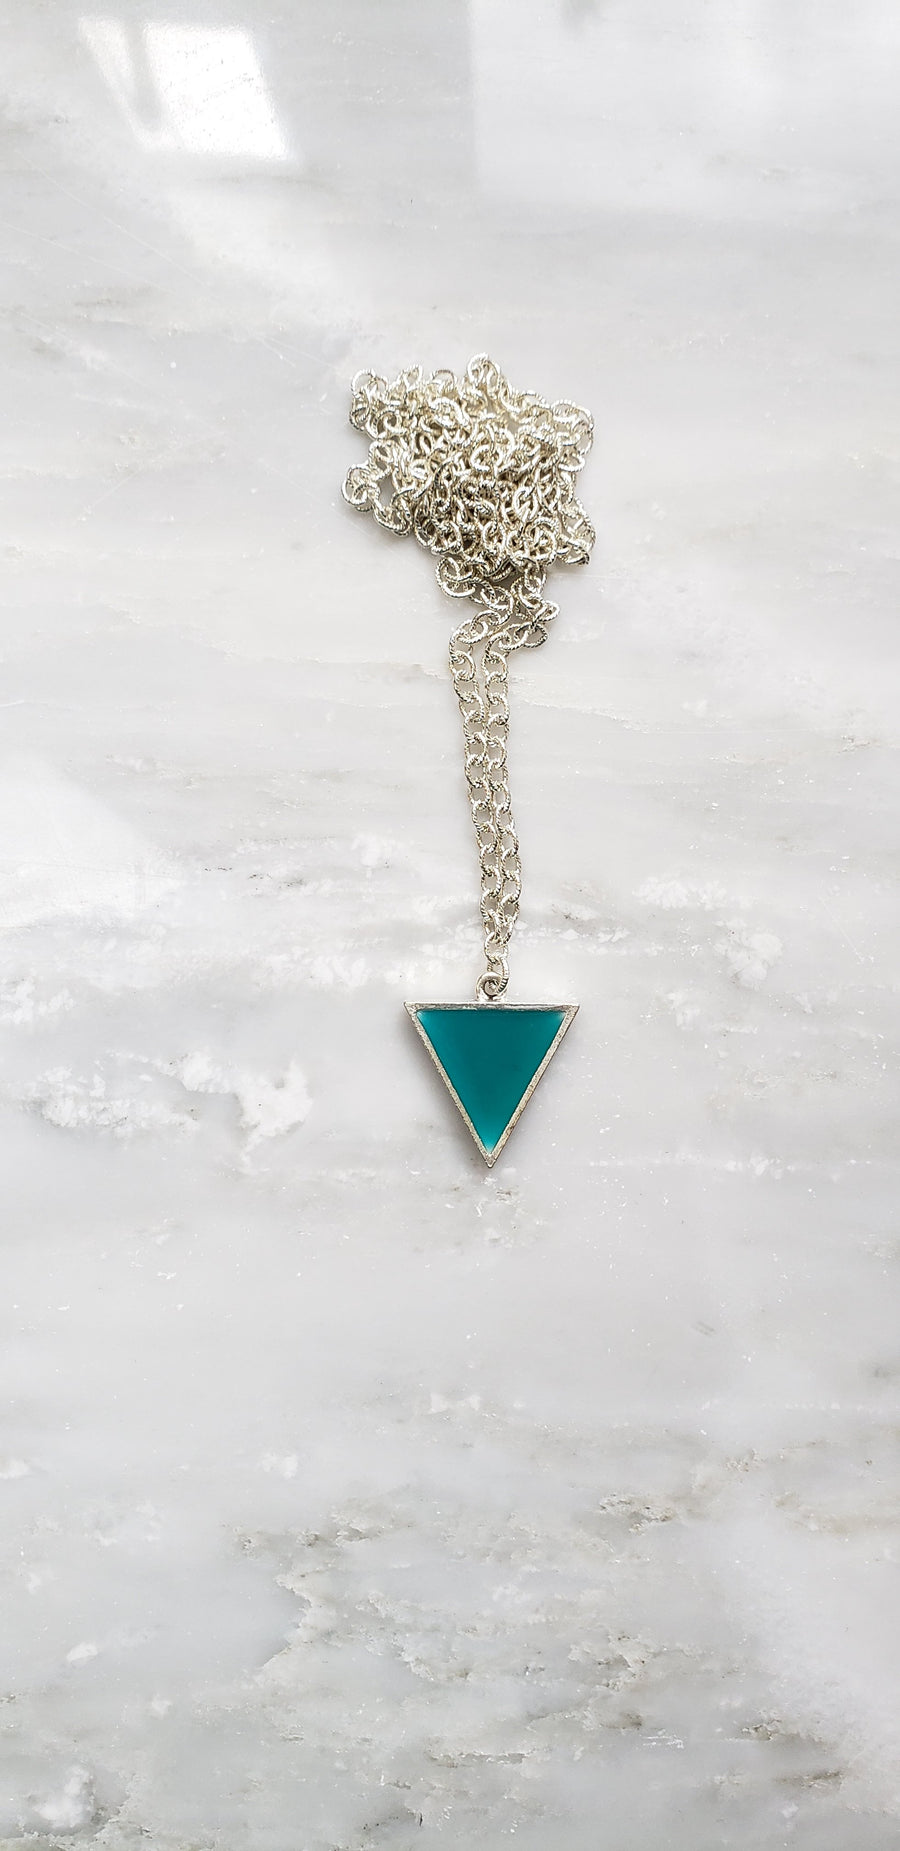 Make Your Point - Teal Green Triangle Statement Necklace